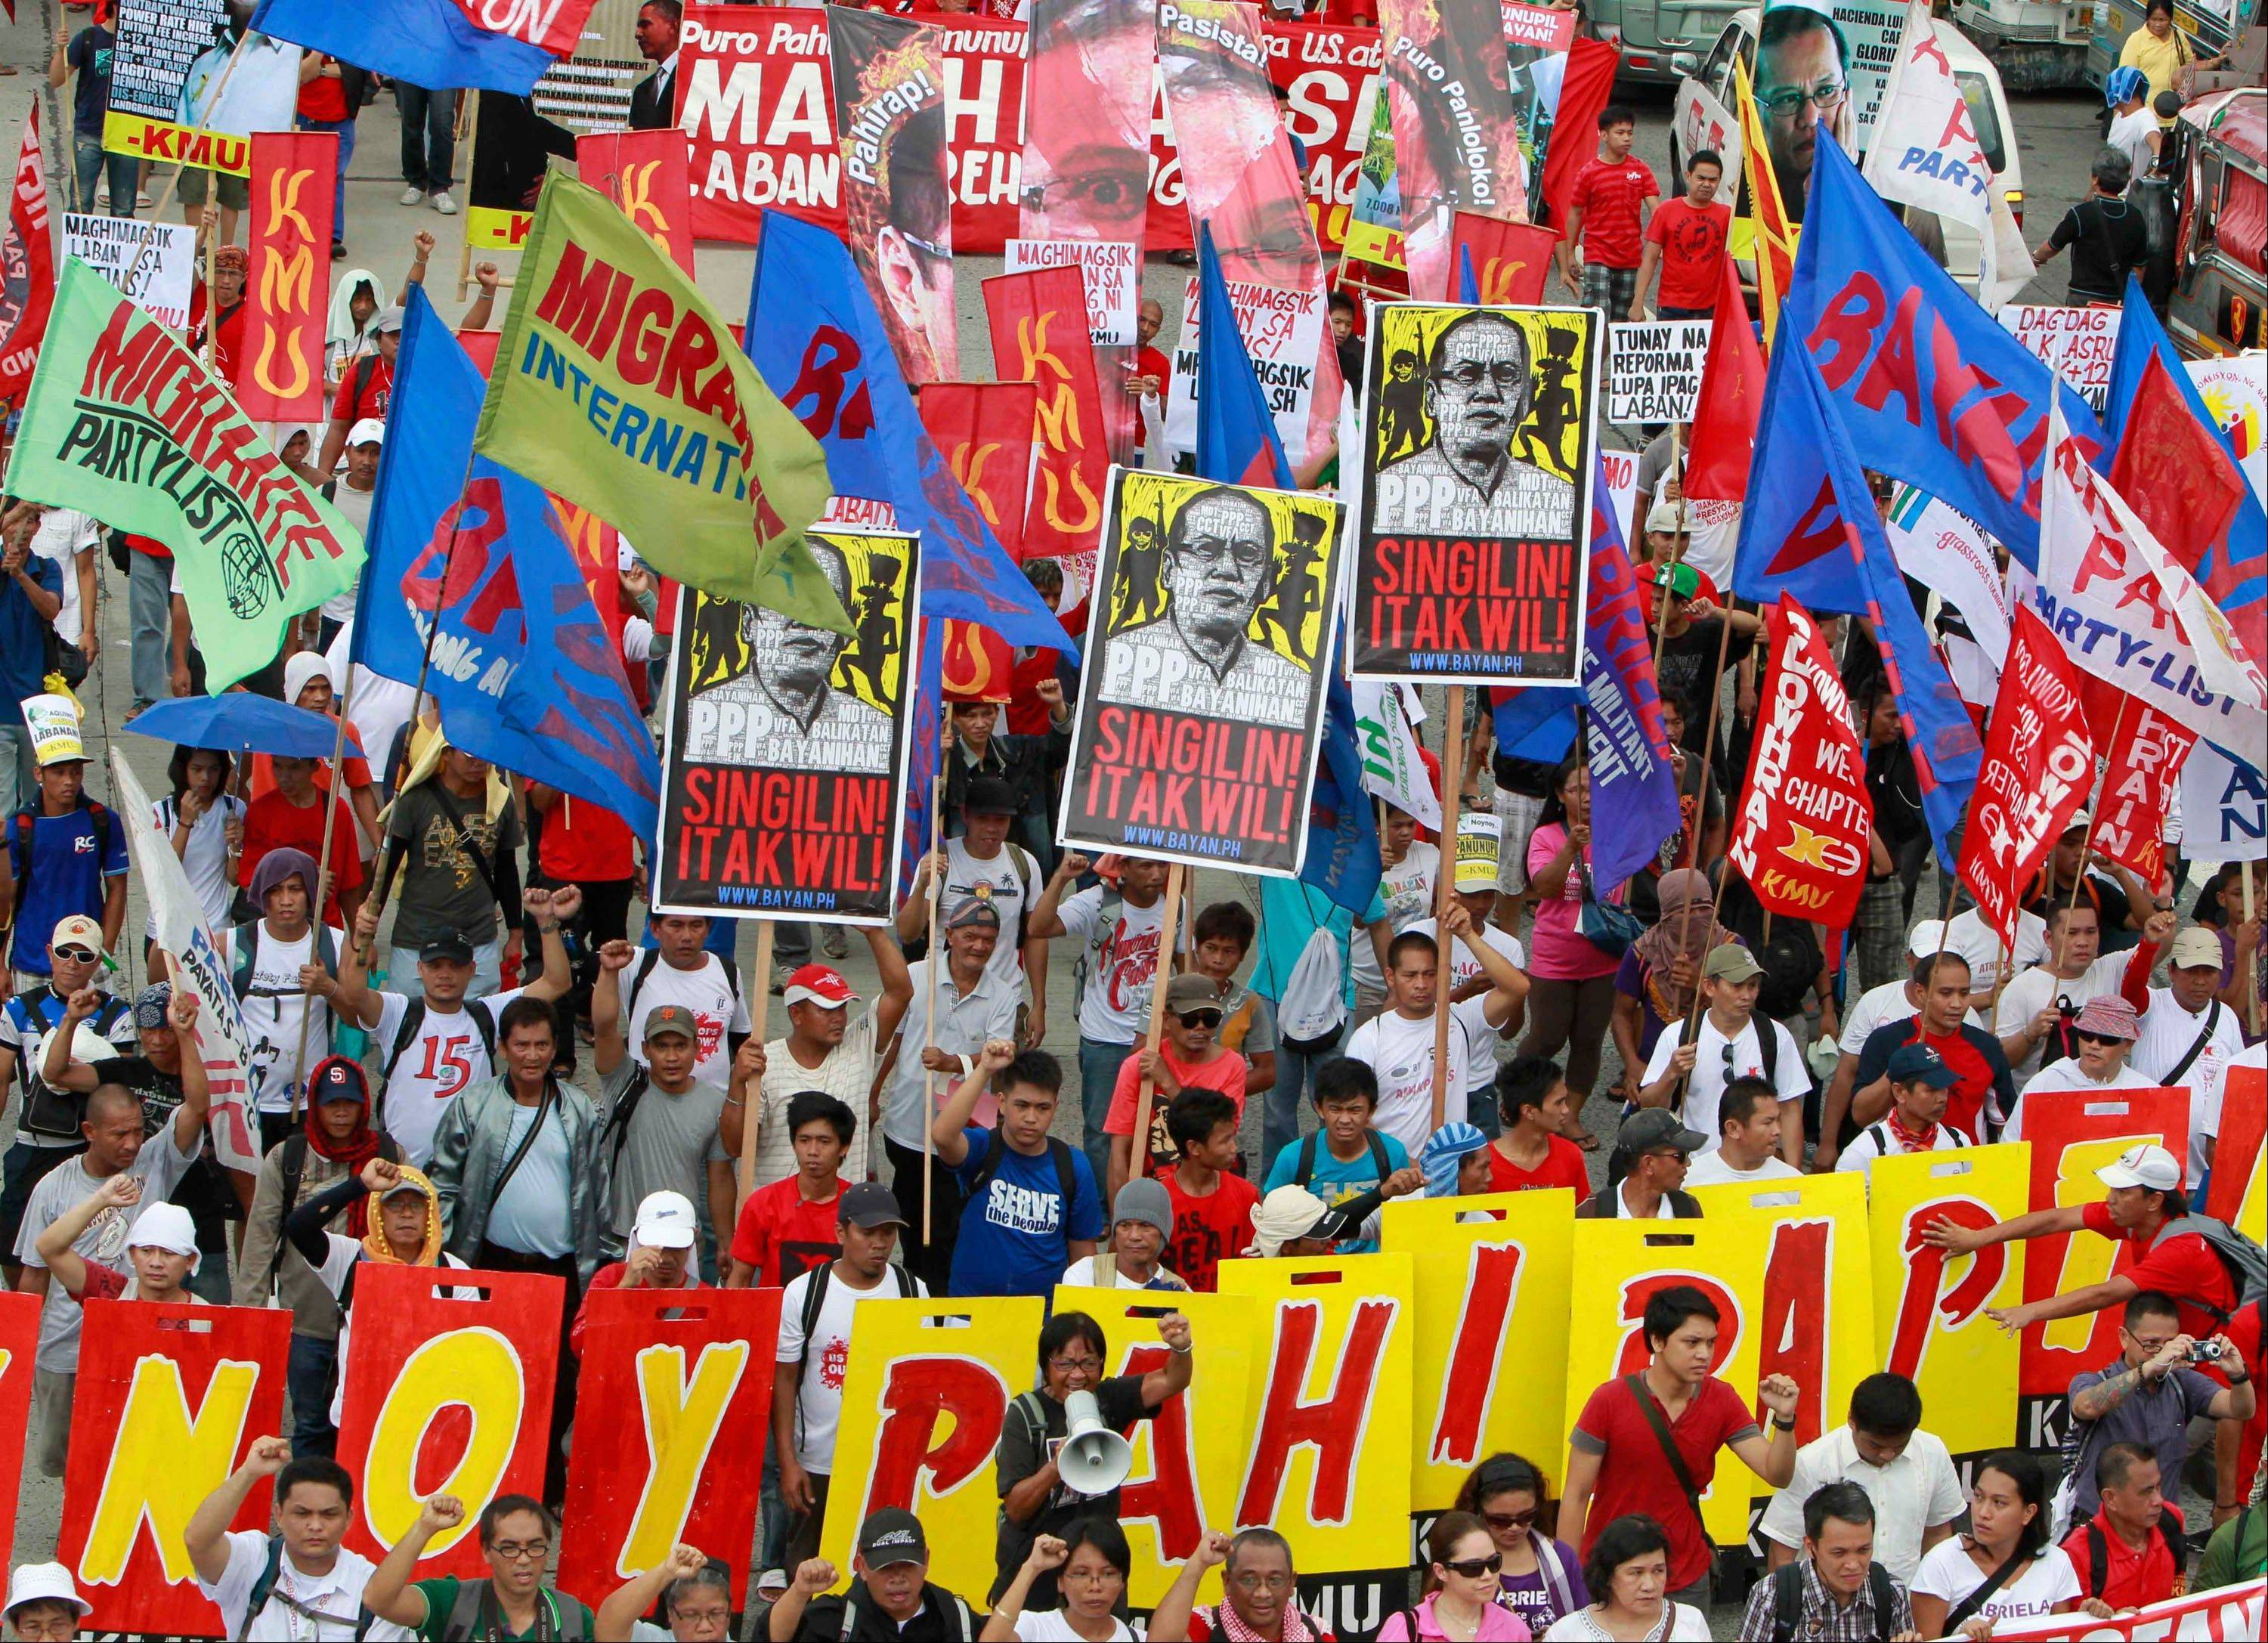 Hundreds of protesters march toward the Philippine Congress to coincide with the third State of the Nation address of Philippine President Benigno Aquino III Monday, northeast of Manila, Philippines.